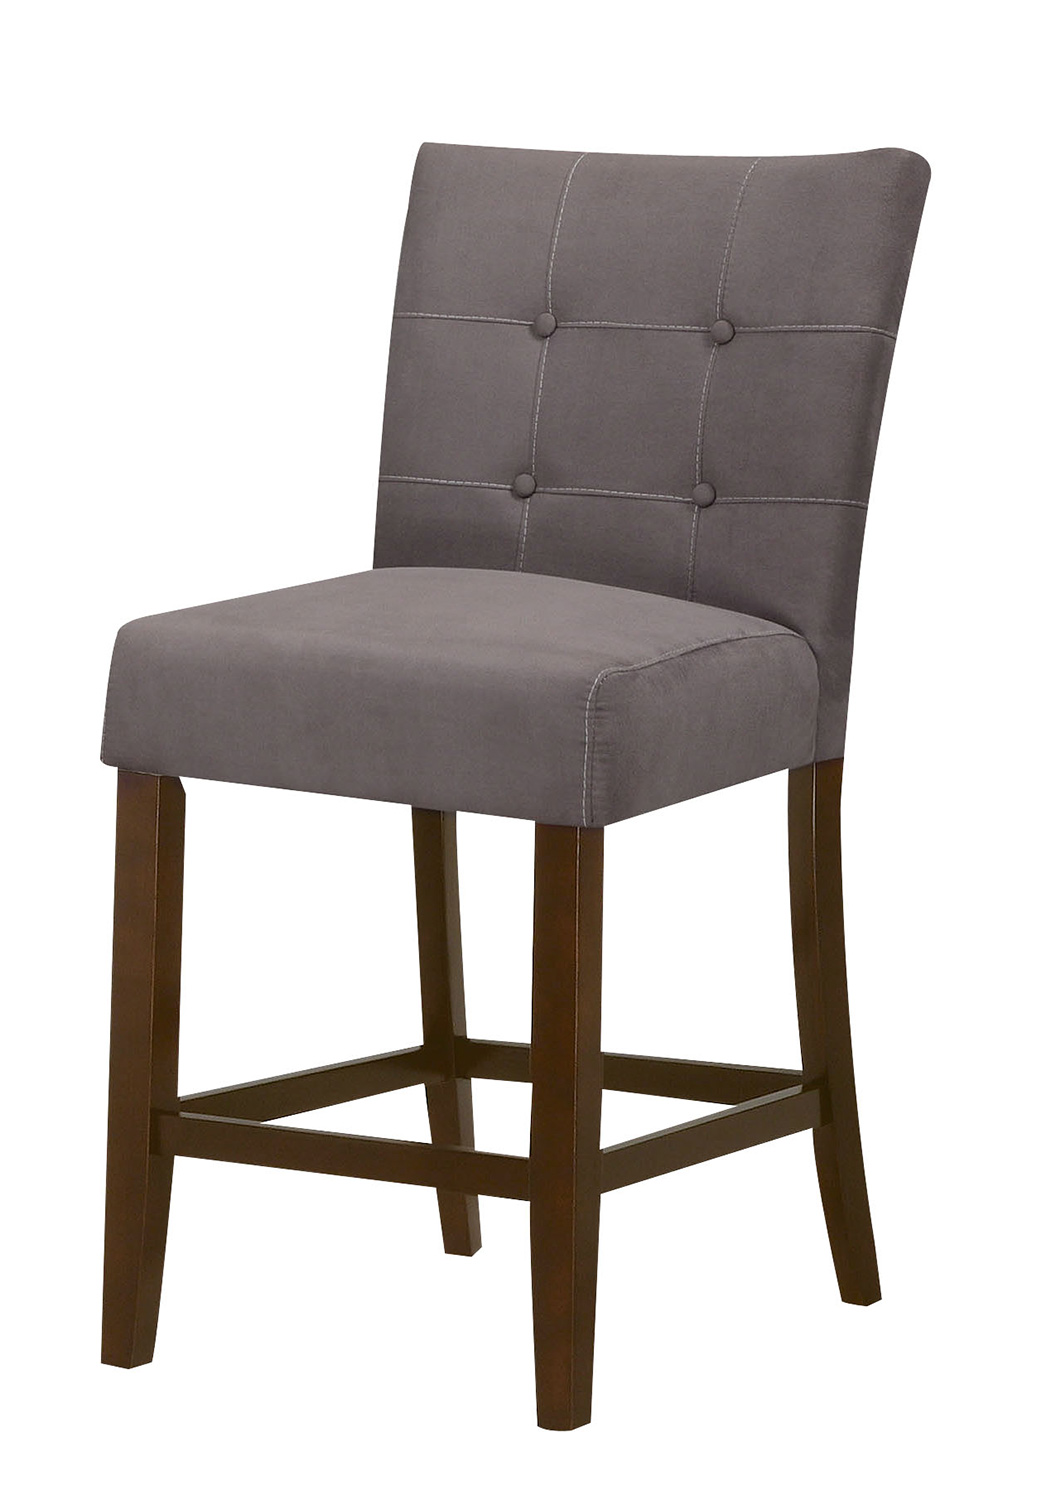 Acme Baldwin Counter Height Chair - Gray/Walnut